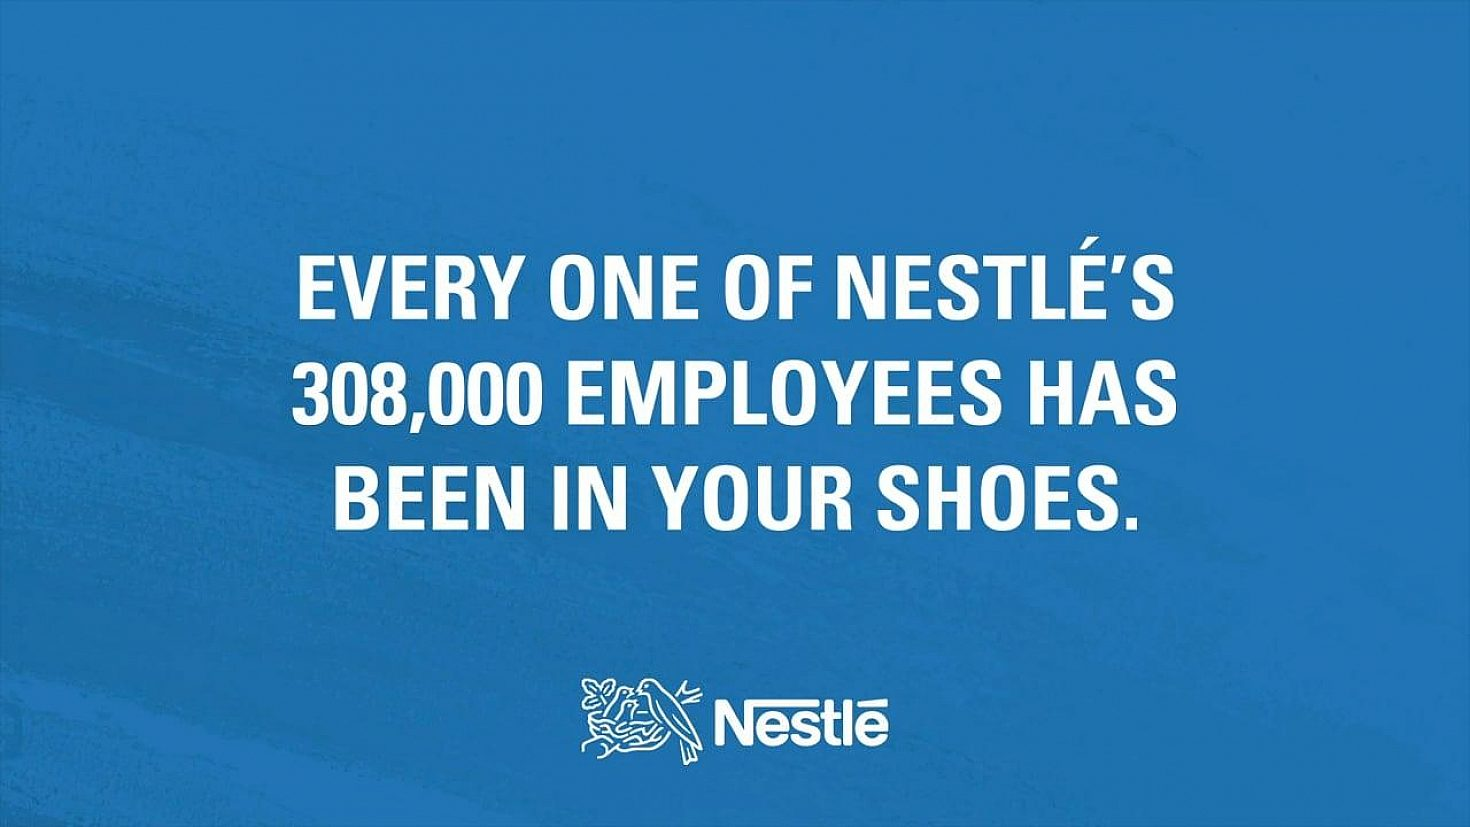 Every One Of Nestle's 308,000 Employees has been in your shoes.